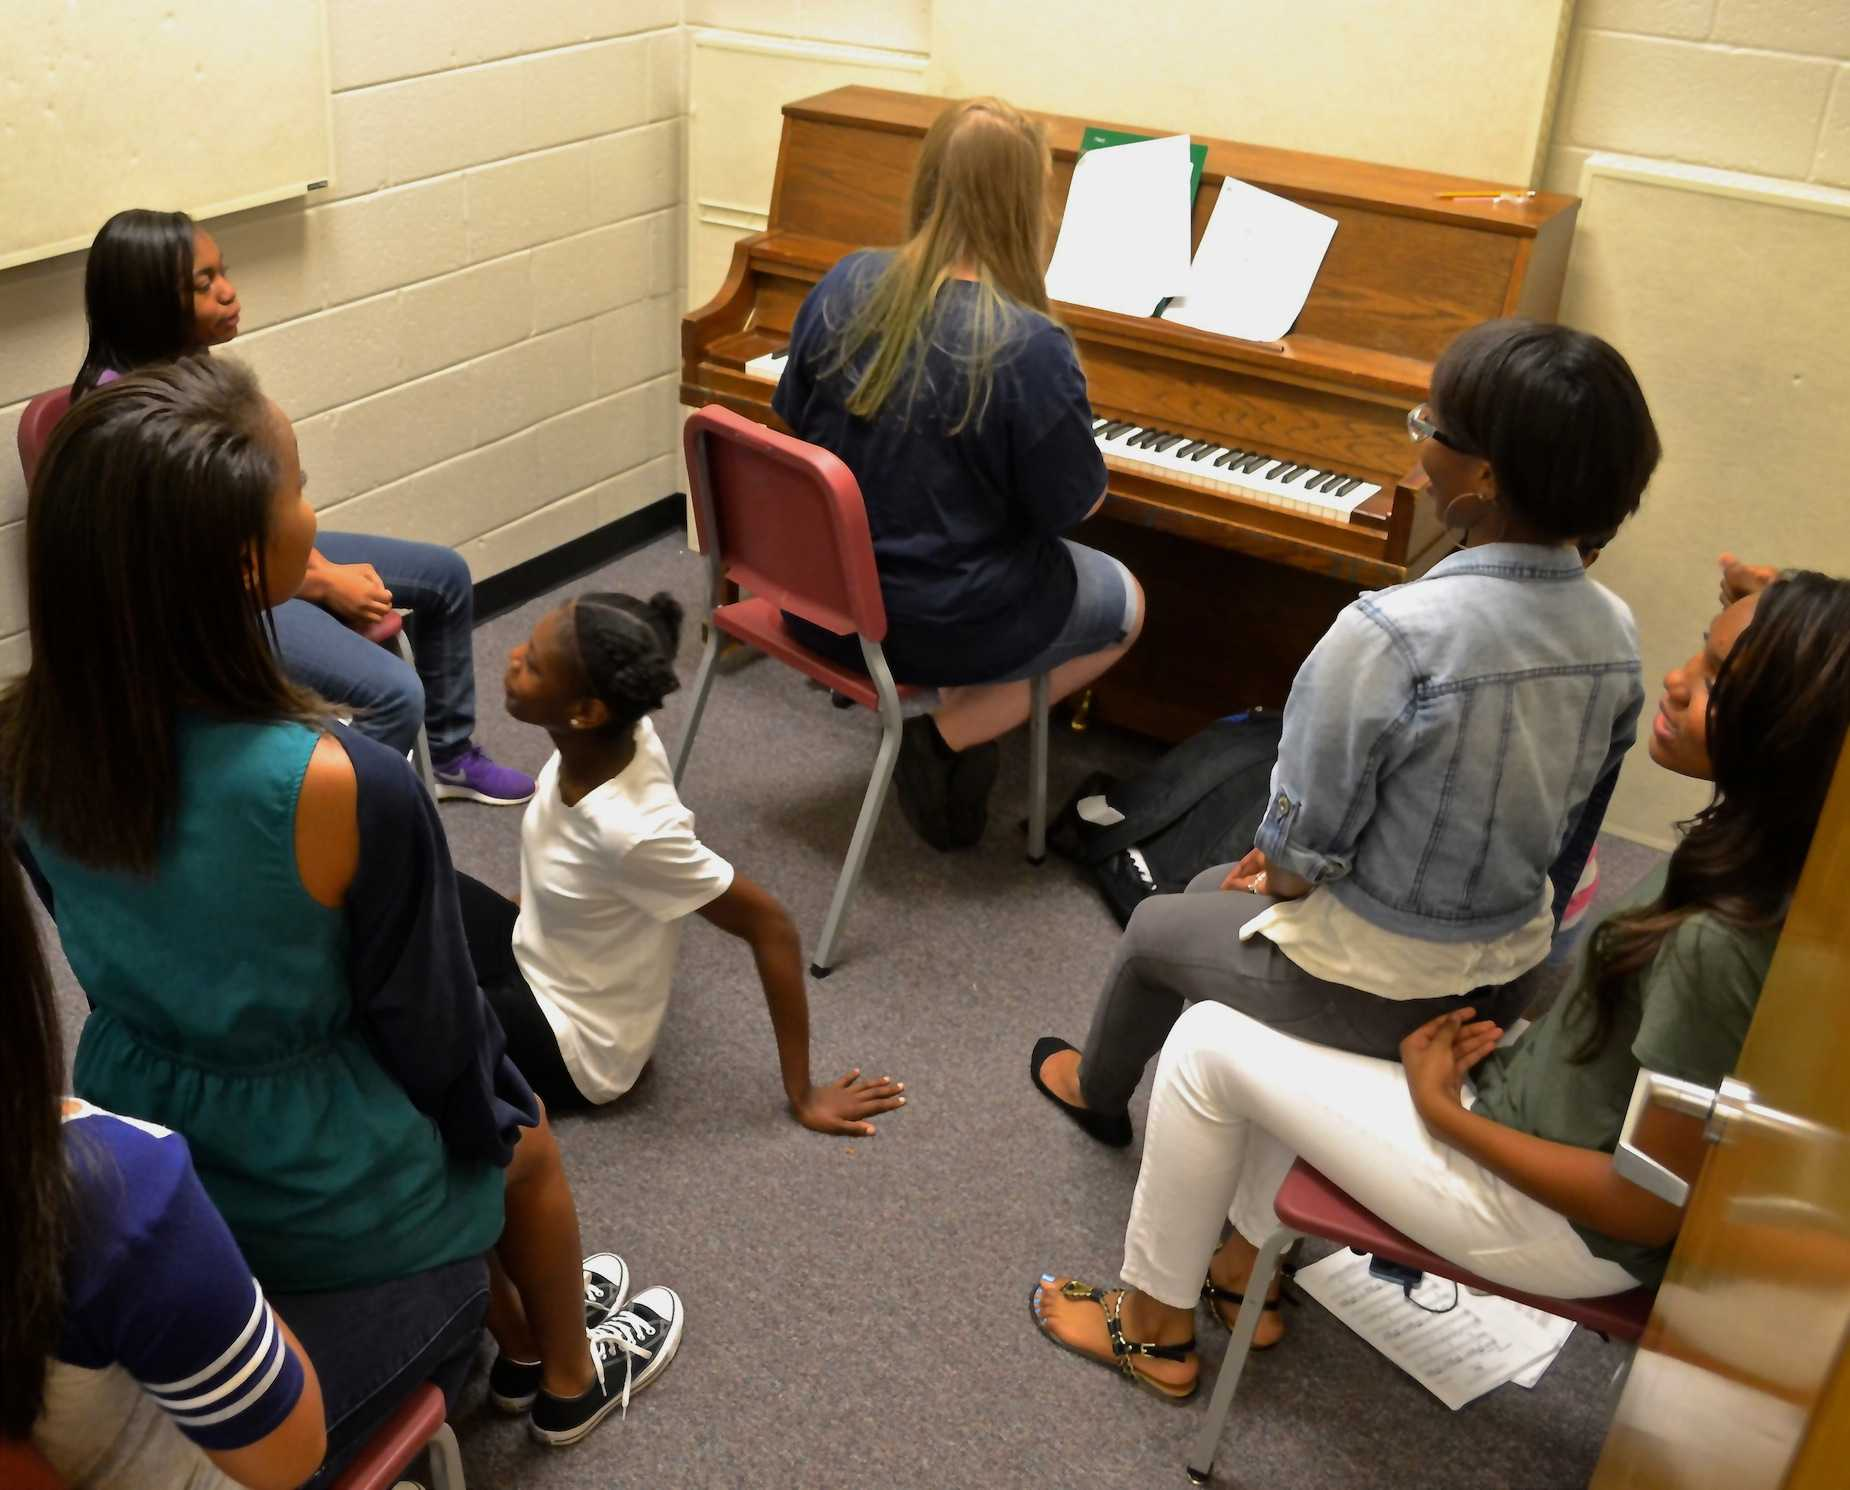 Chorus class sings their way into the school year for their third sectional group meeting of the year. Sectional groups practice singing in individual rooms to perfect their tone and pitch. Alto 2 leader and junior Kara Yancy plays piano while fellow chorus members sing along, practicing for their first concert on November 16.